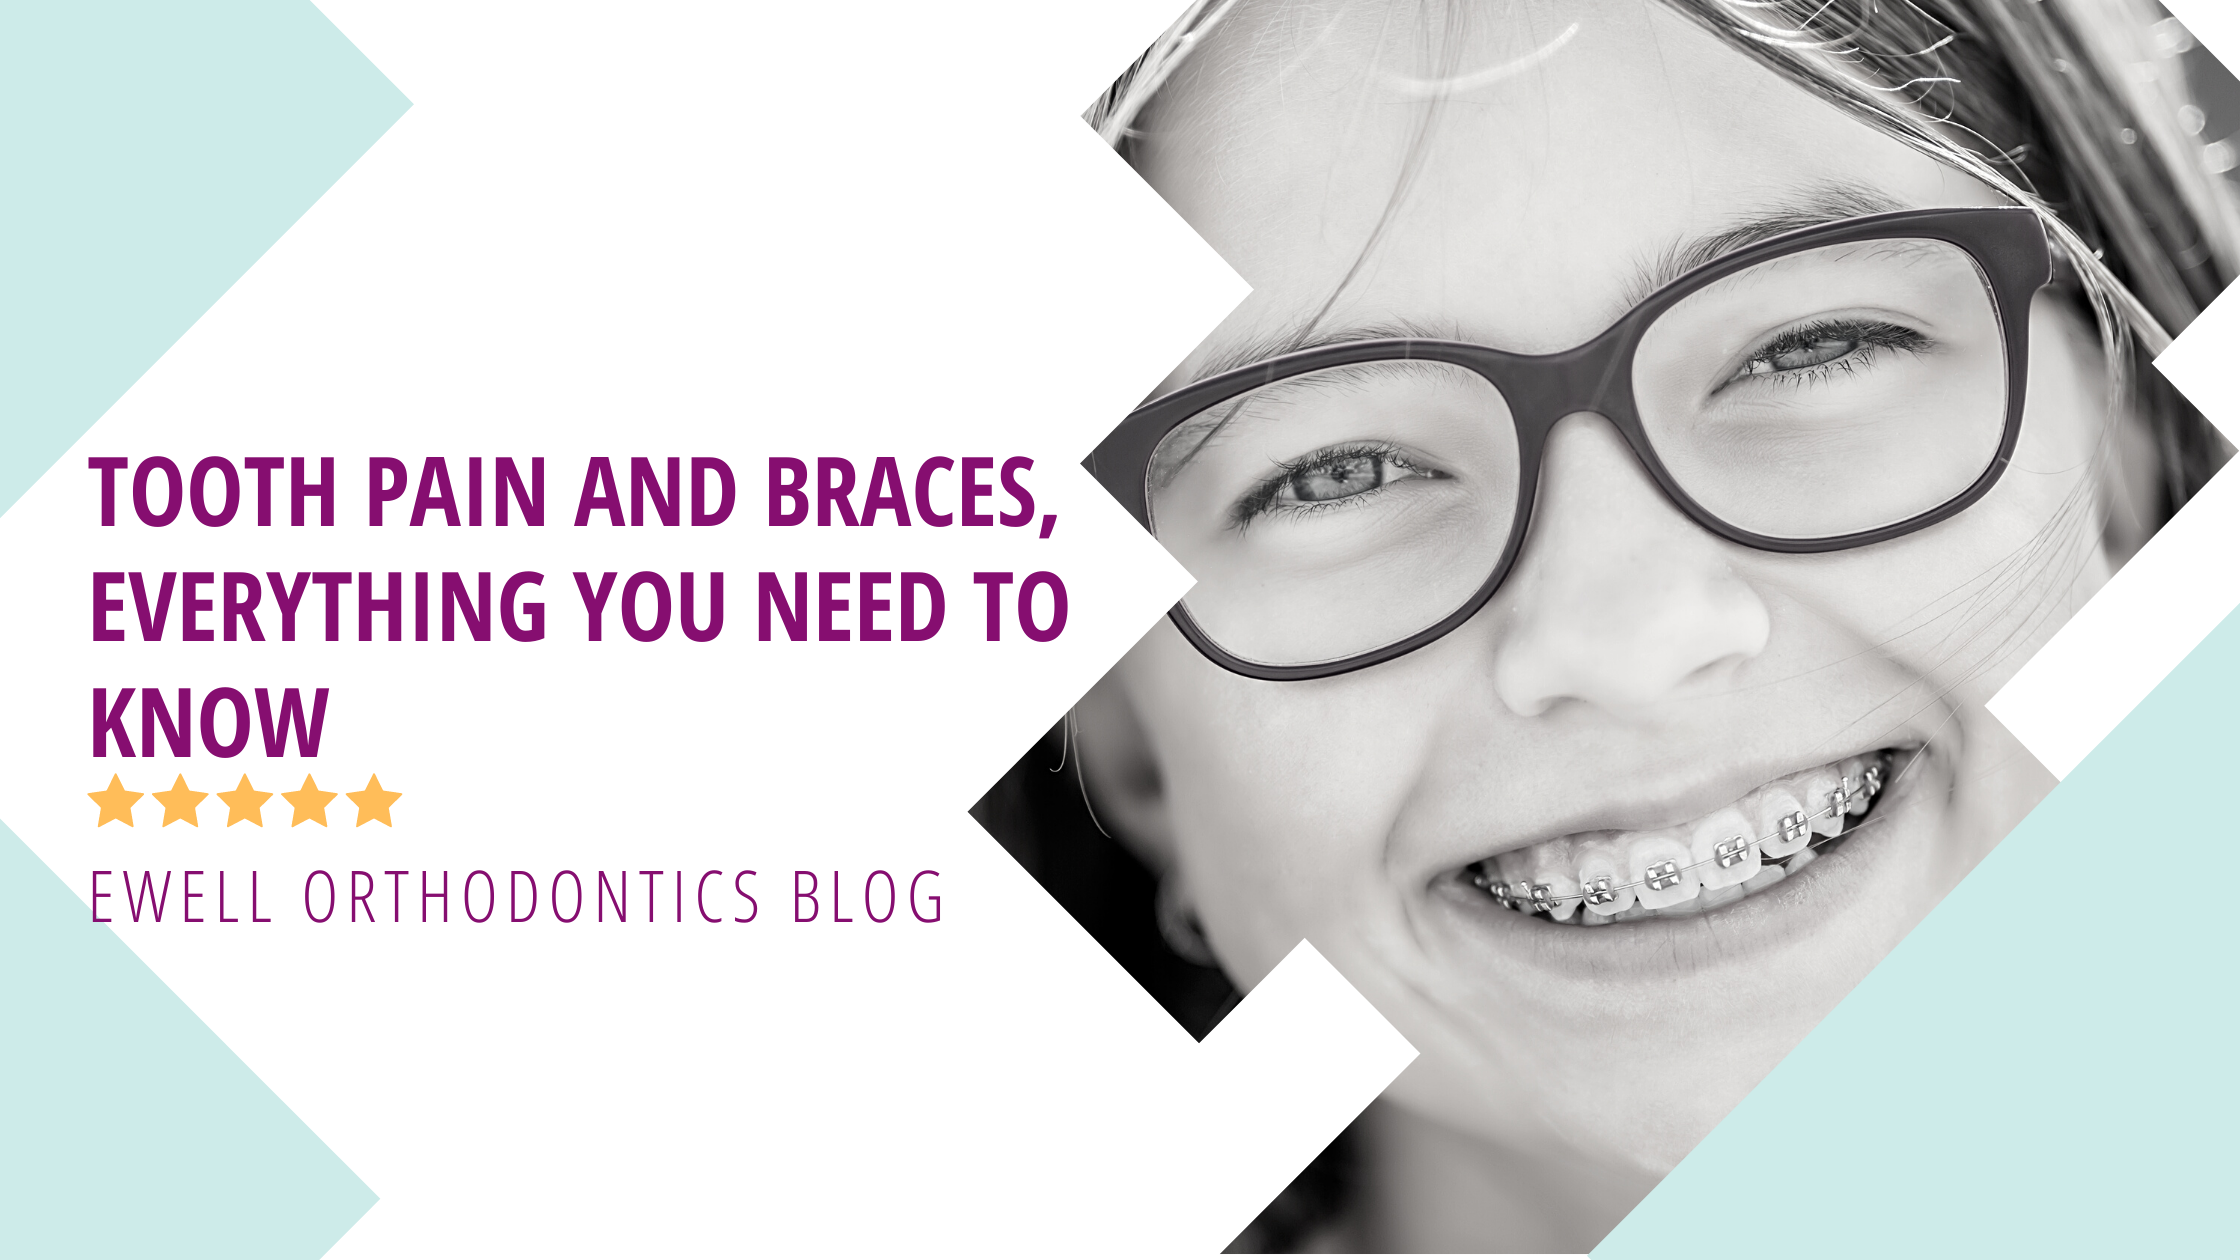 Tooth pain and braces, everything you need to know